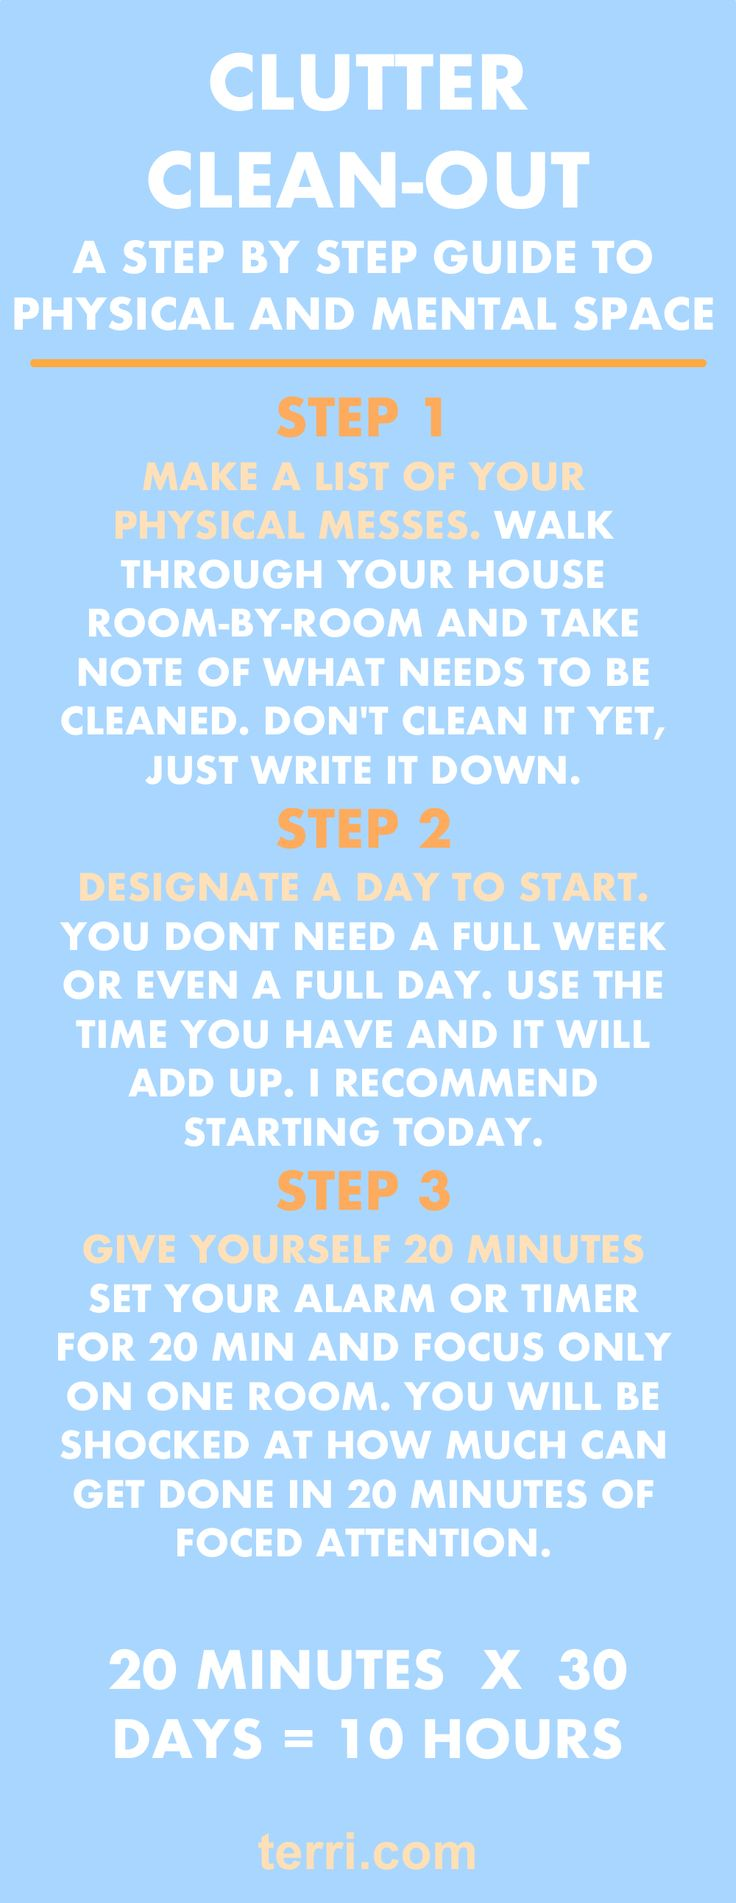 Cleaning your messes allows you to focus, with more energy, on the future. When projects go unfinished, not only do they take up physical space, but they also take up mental space. All of your unfinished projects are draining your energy and stealing your peace. This step by step guide can be used as a great cleaning schedule. These are my cleaning tips, hacks and tricks for physical and mental clutter!  For more success tips visit terri.com